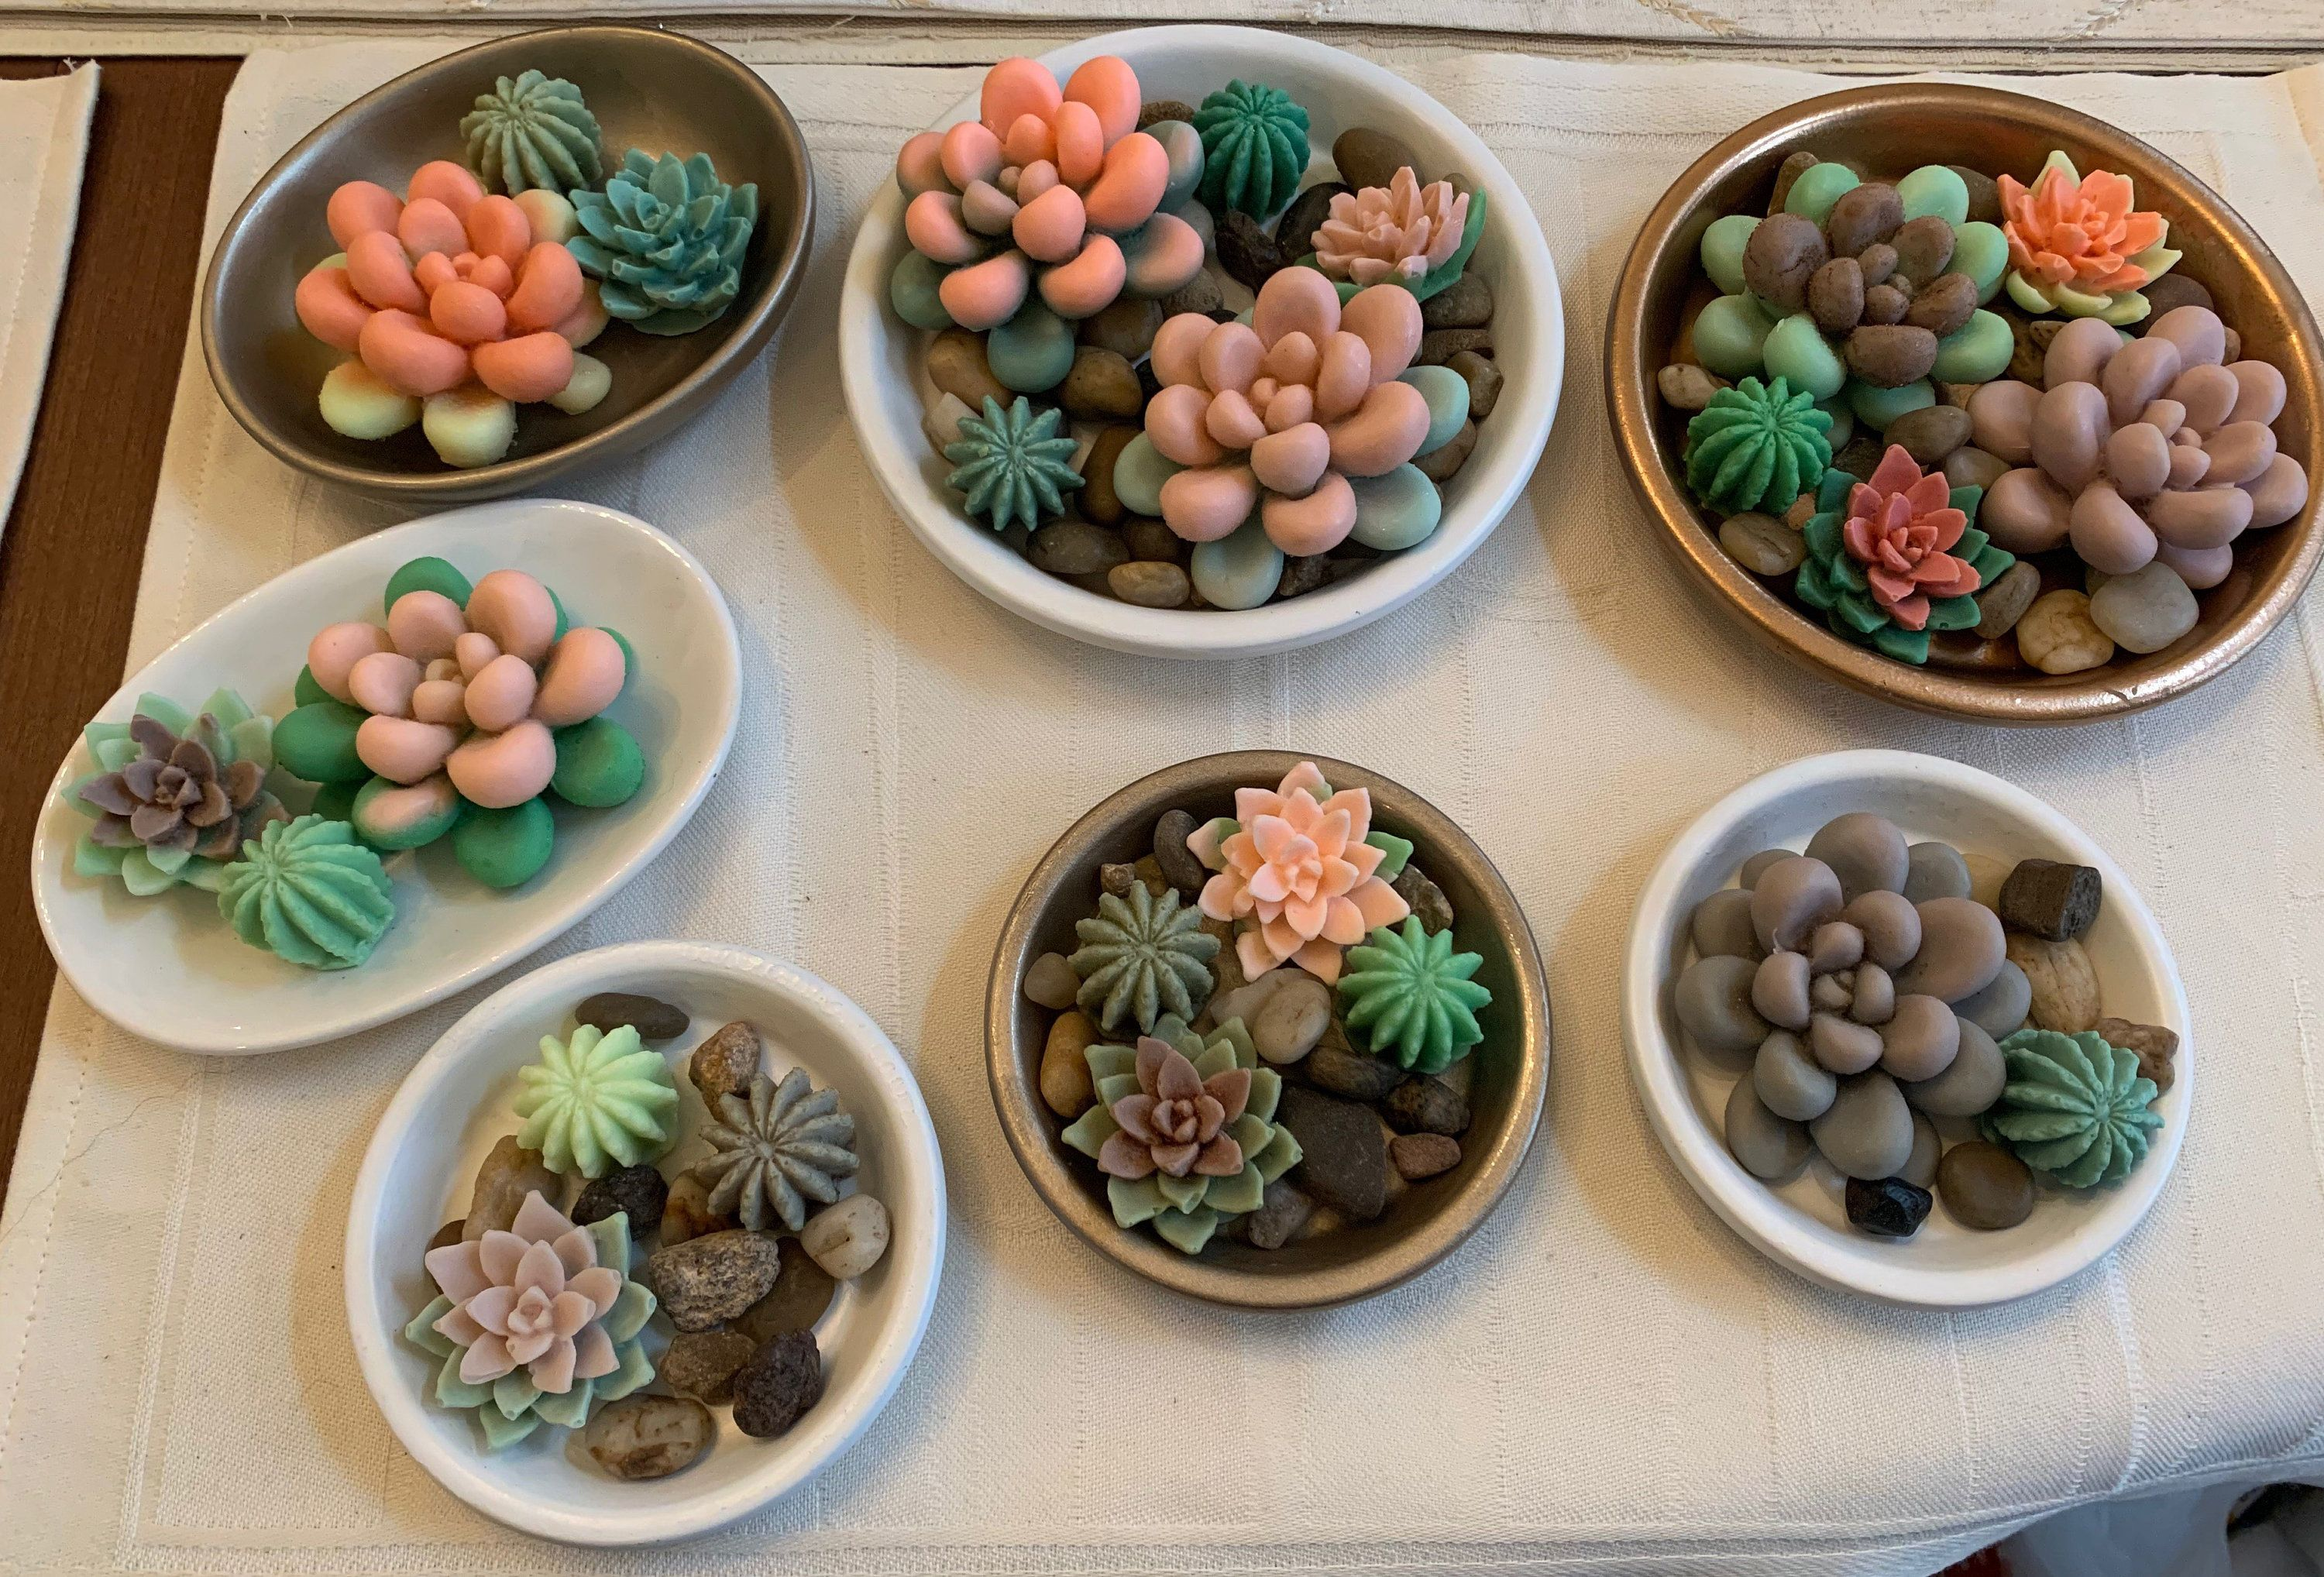 Succulent soaps in a dish Homemade bath soaps too adorable